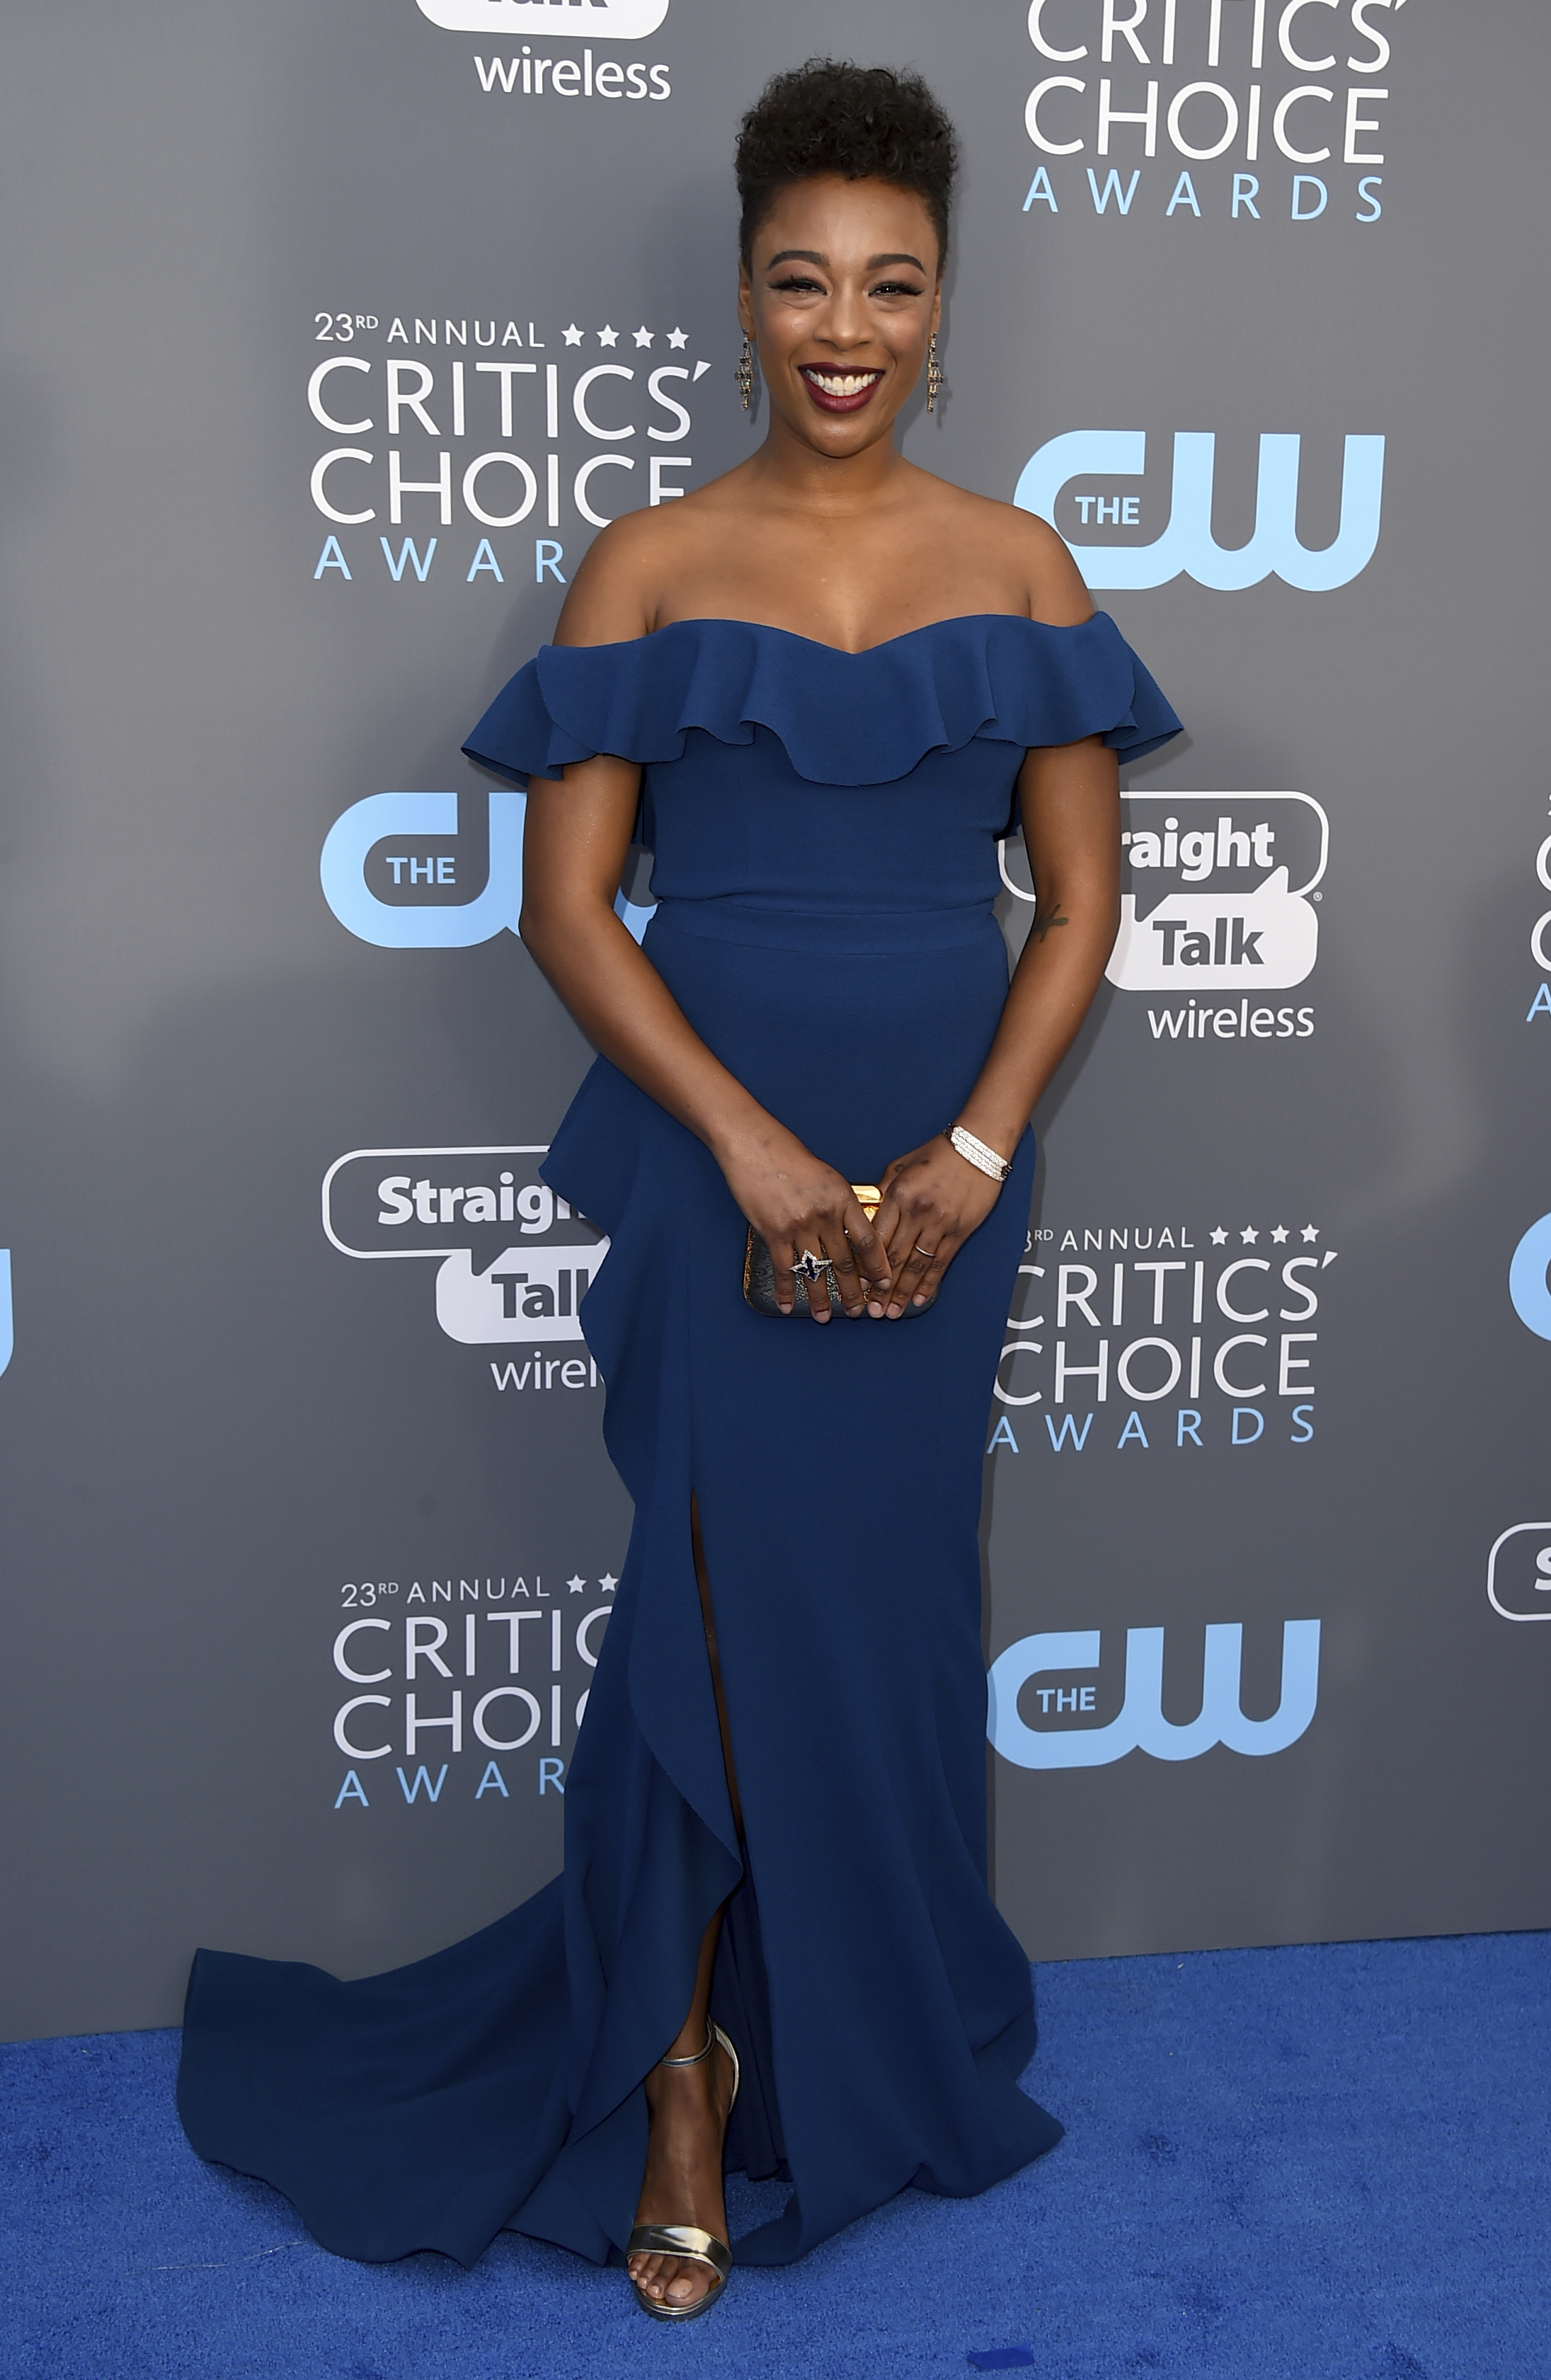 <div class='meta'><div class='origin-logo' data-origin='AP'></div><span class='caption-text' data-credit='Jordan Strauss/Invision/AP'>Samira Wiley arrives at the 23rd annual Critics' Choice Awards at the Barker Hangar on Thursday, Jan. 11, 2018, in Santa Monica, Calif.</span></div>